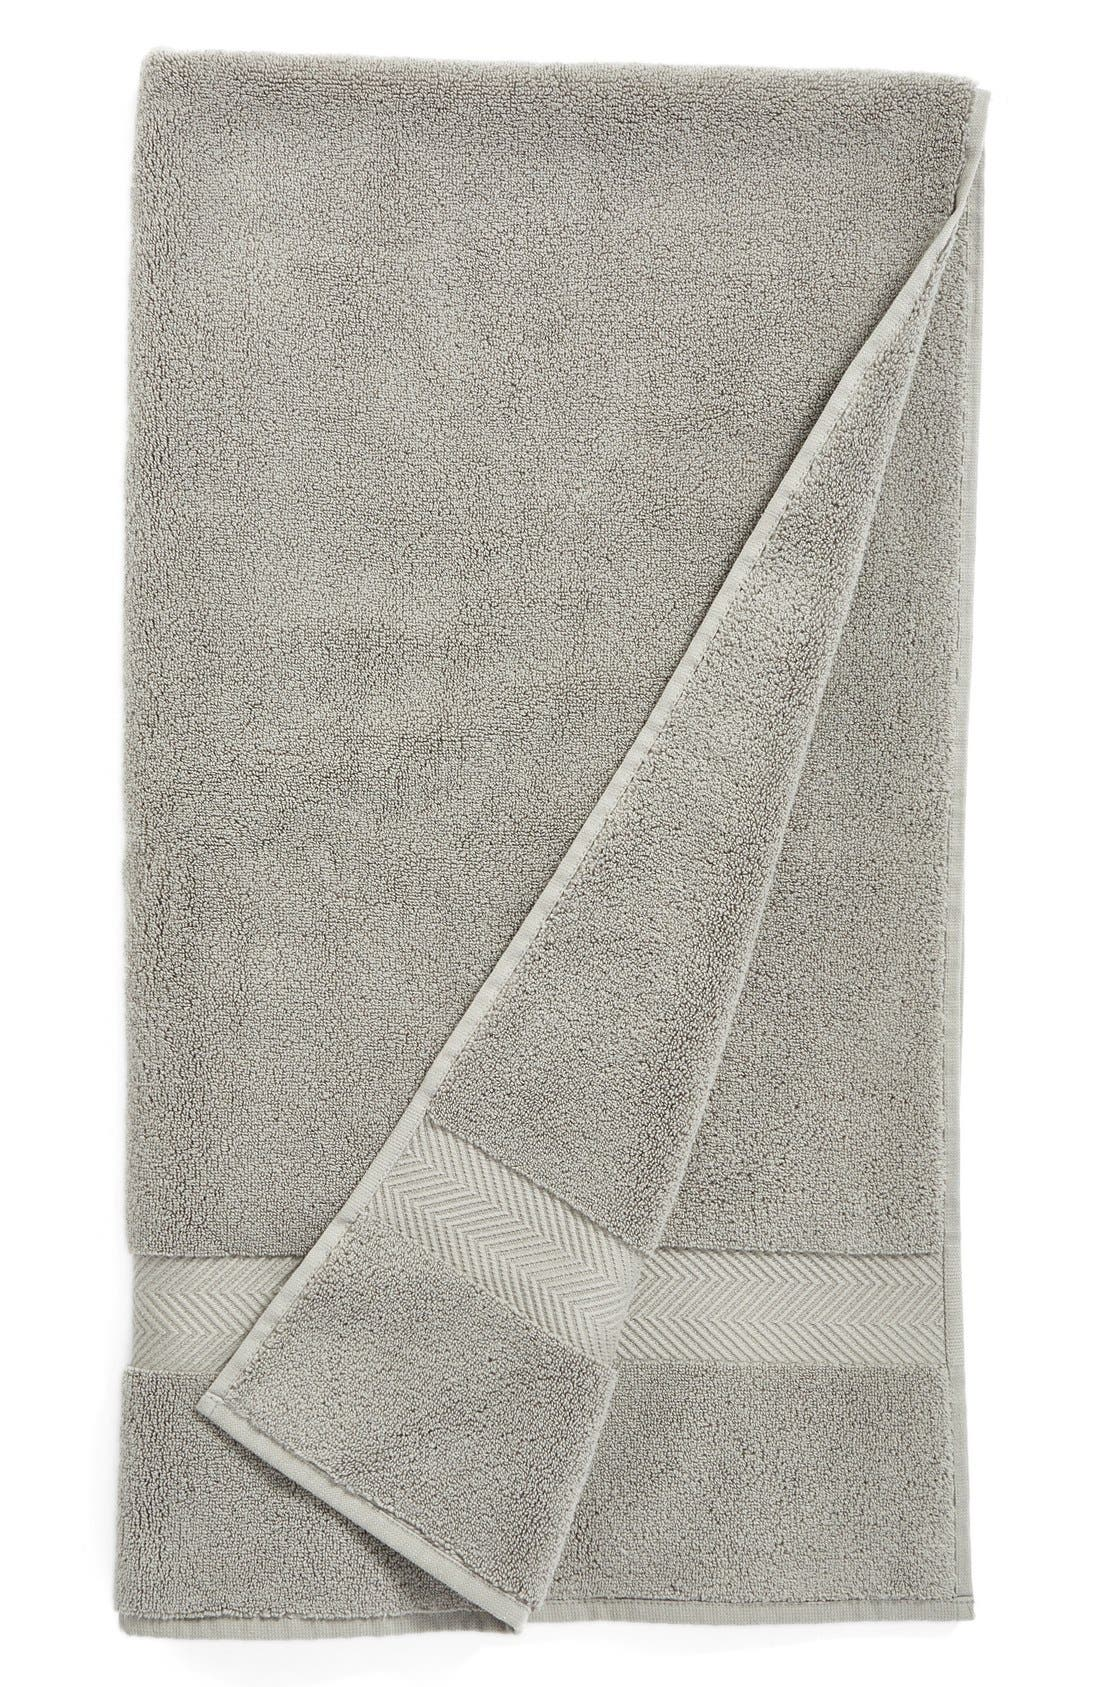 NORDSTROM AT HOME, Hydrocotton Bath Towel, Main thumbnail 1, color, GRAPHITE